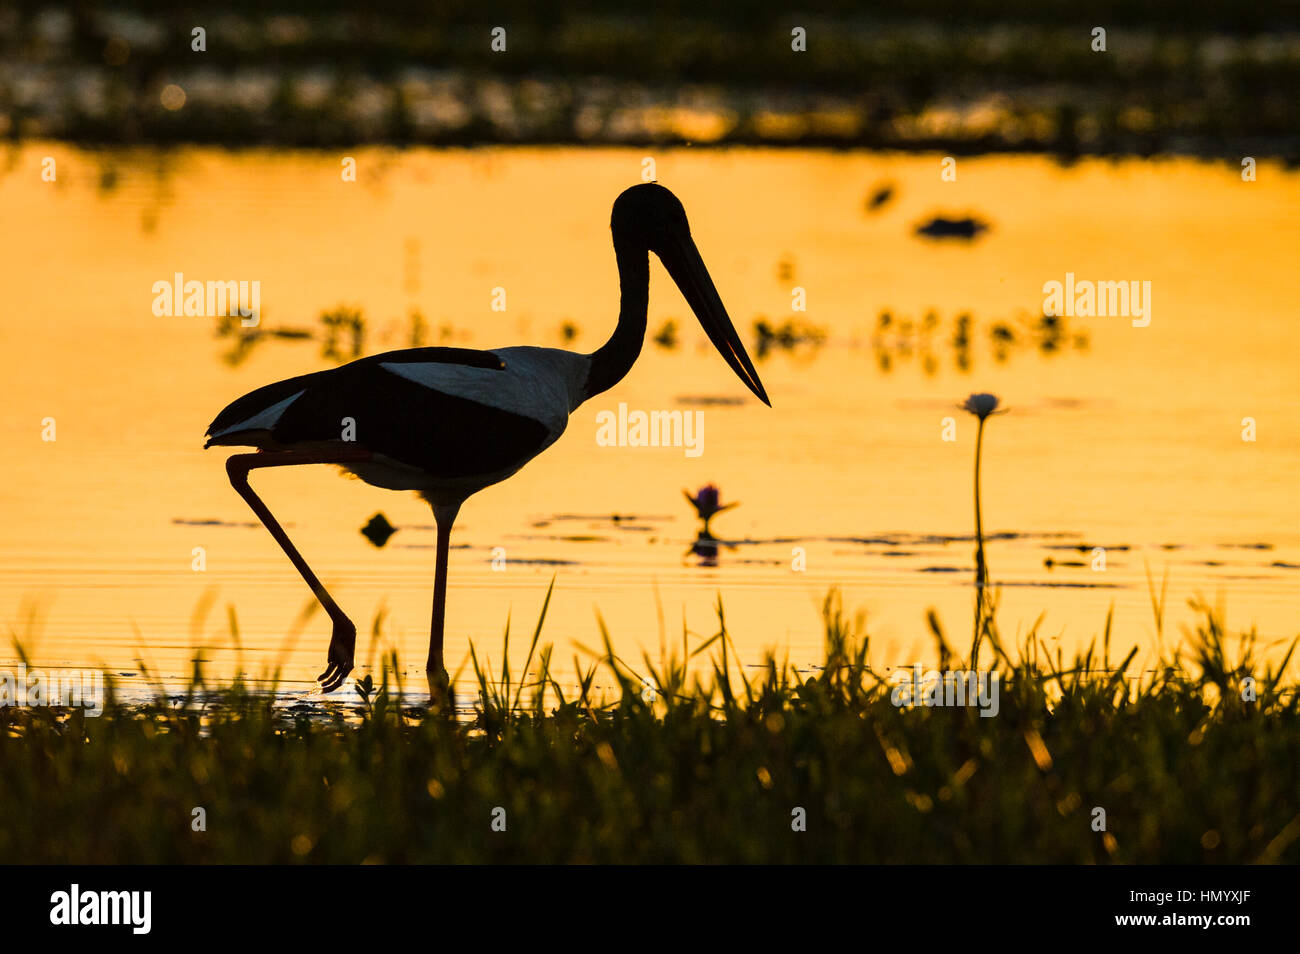 The silhouette of a Black-necked Stork hunting for prey in the shallows at sunset. - Stock Image